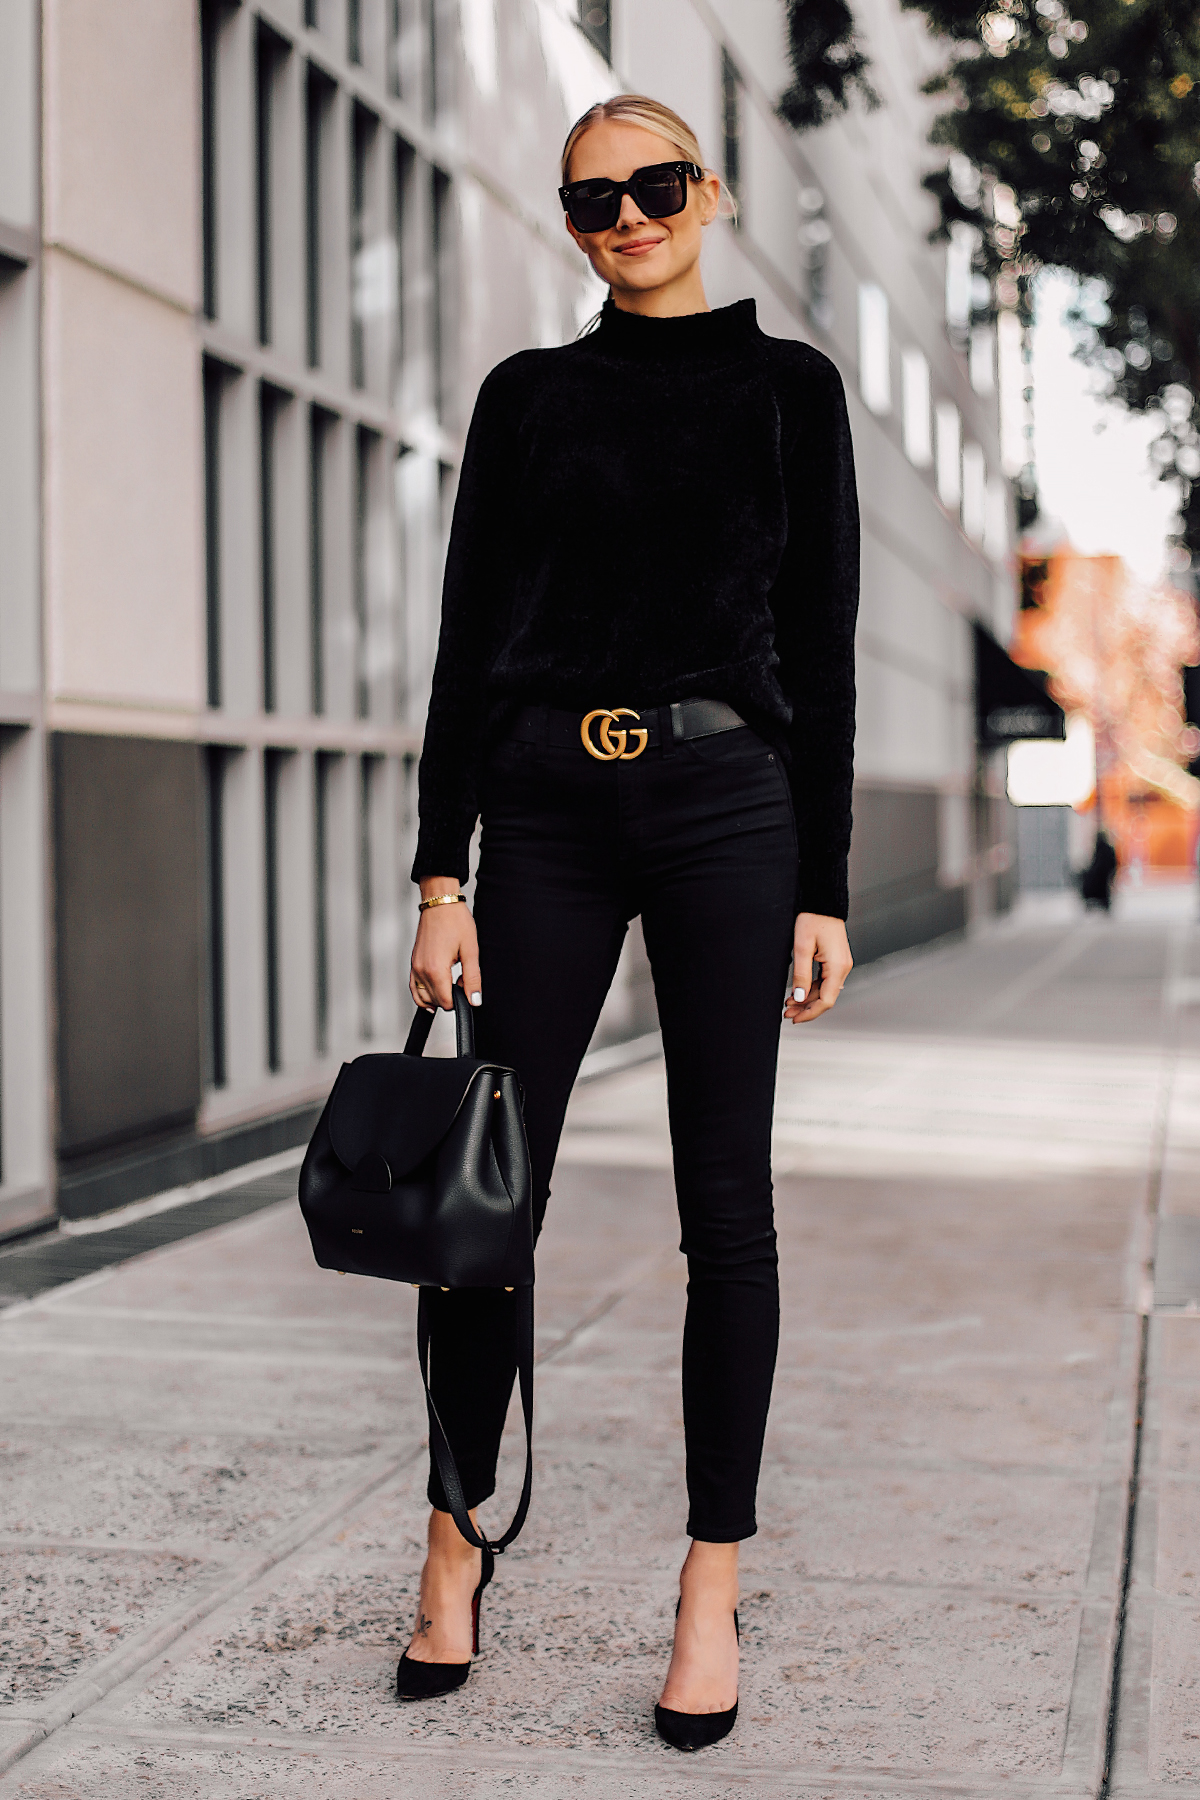 Blonde Woman Wearing Black Chenille Mock Neck Sweater Black Skinny Jeans Black Pumps Black Gucci Belt Black Satchel Handbag Fashion Jackson San Diego Fashion Blogger Street Style